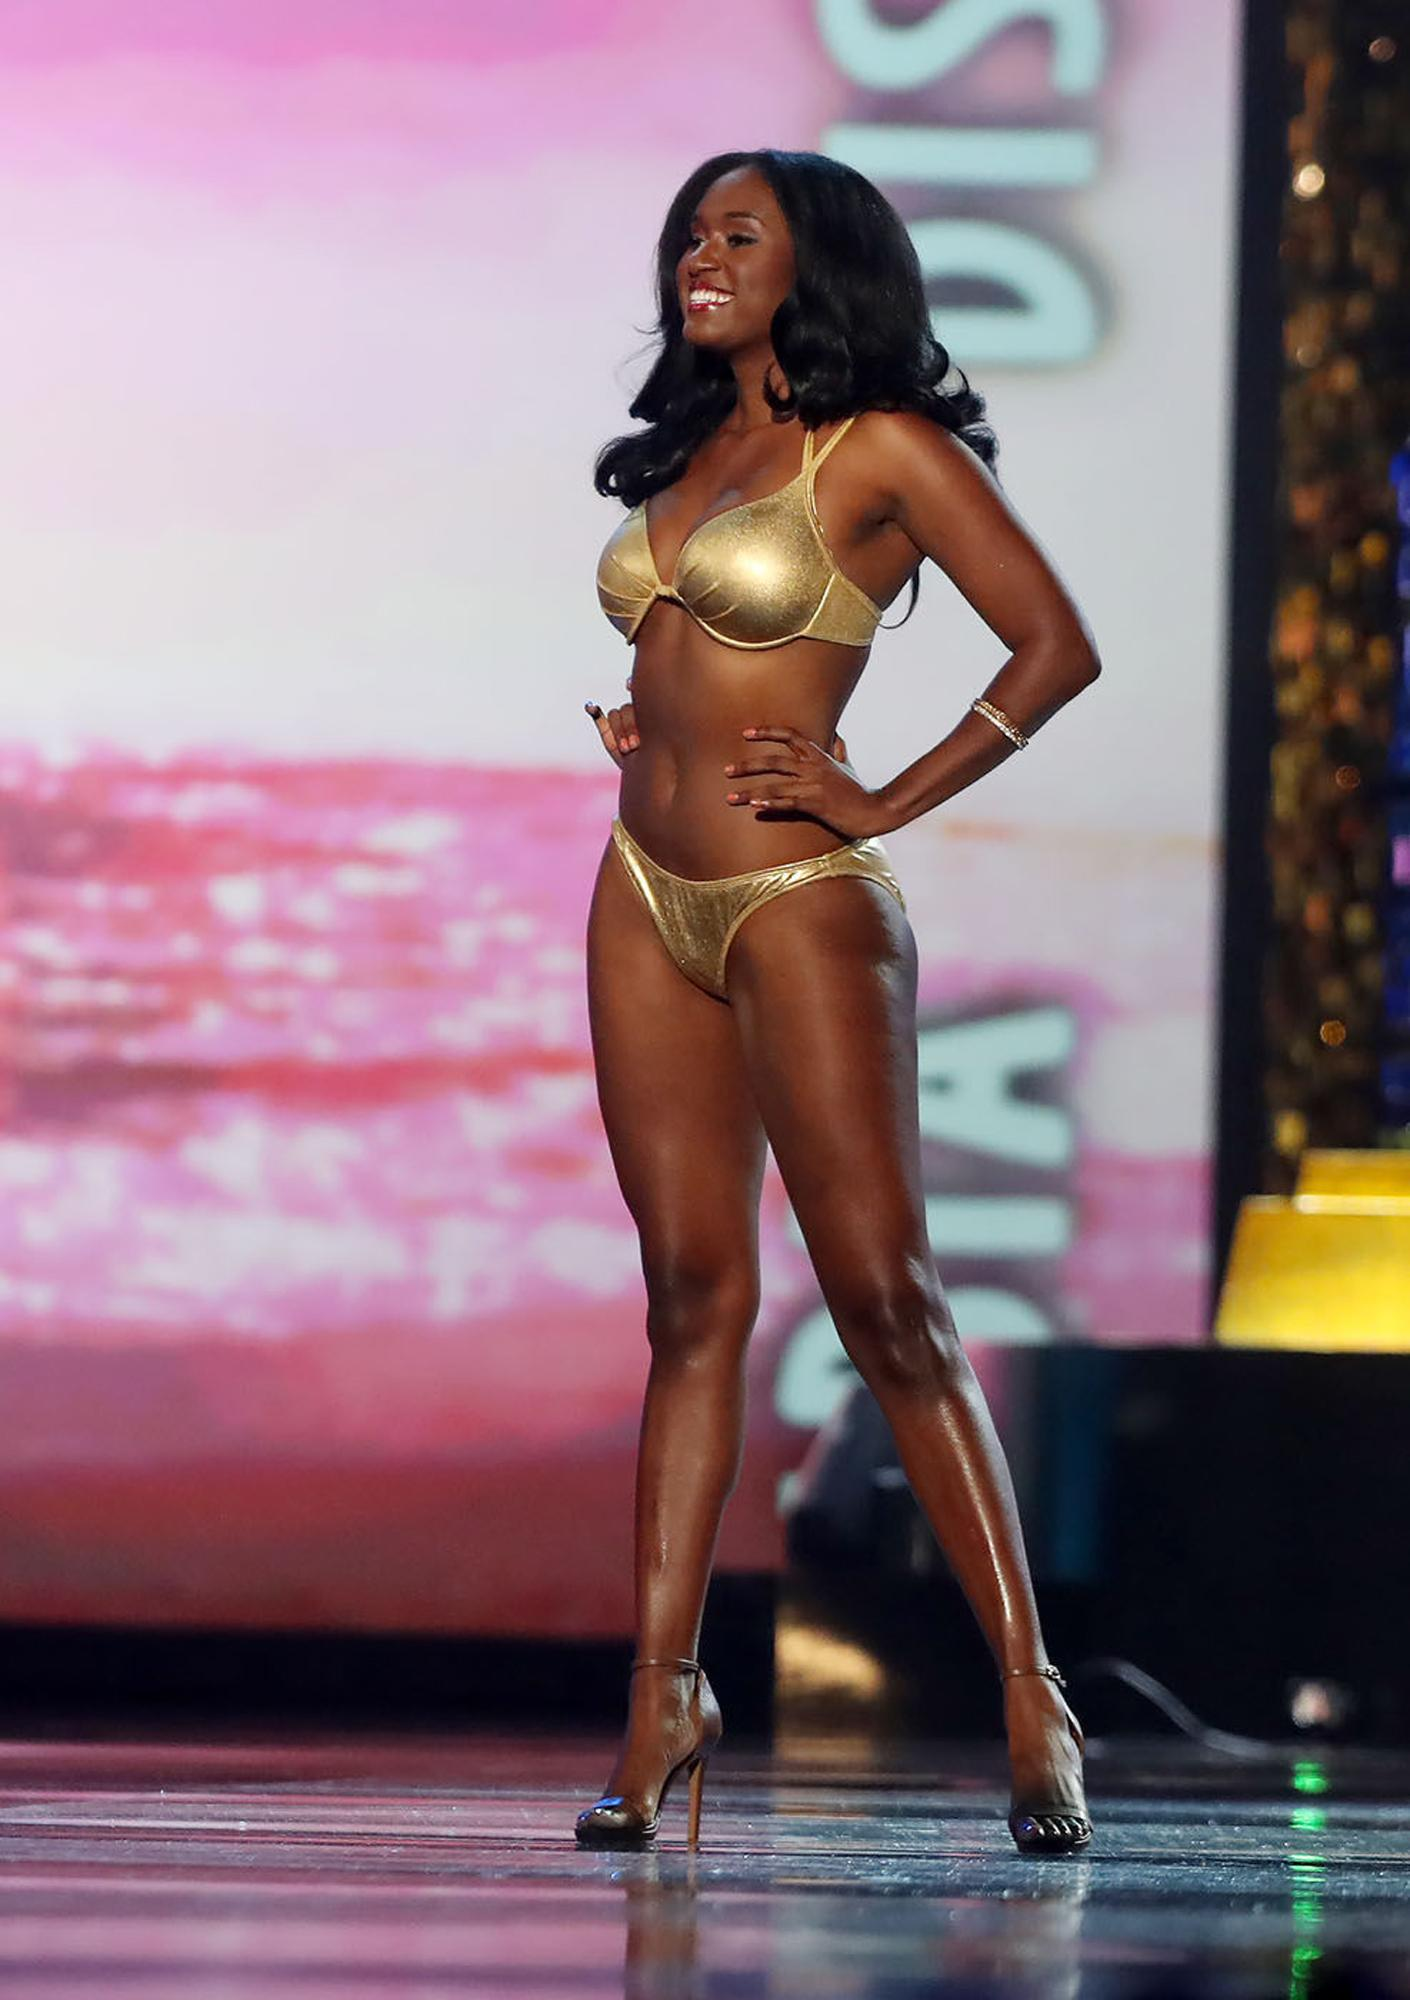 Miss District of Columbia 2017, Briana Kinsey, walks the stage in the fitness competition during second night of Miss America 2018 preliminaries at Boardwalk Hall, in Atlantic City, N.J. Thursday Sept. 7, 2017 . (Edward Lea/The Press of Atlantic City via AP)